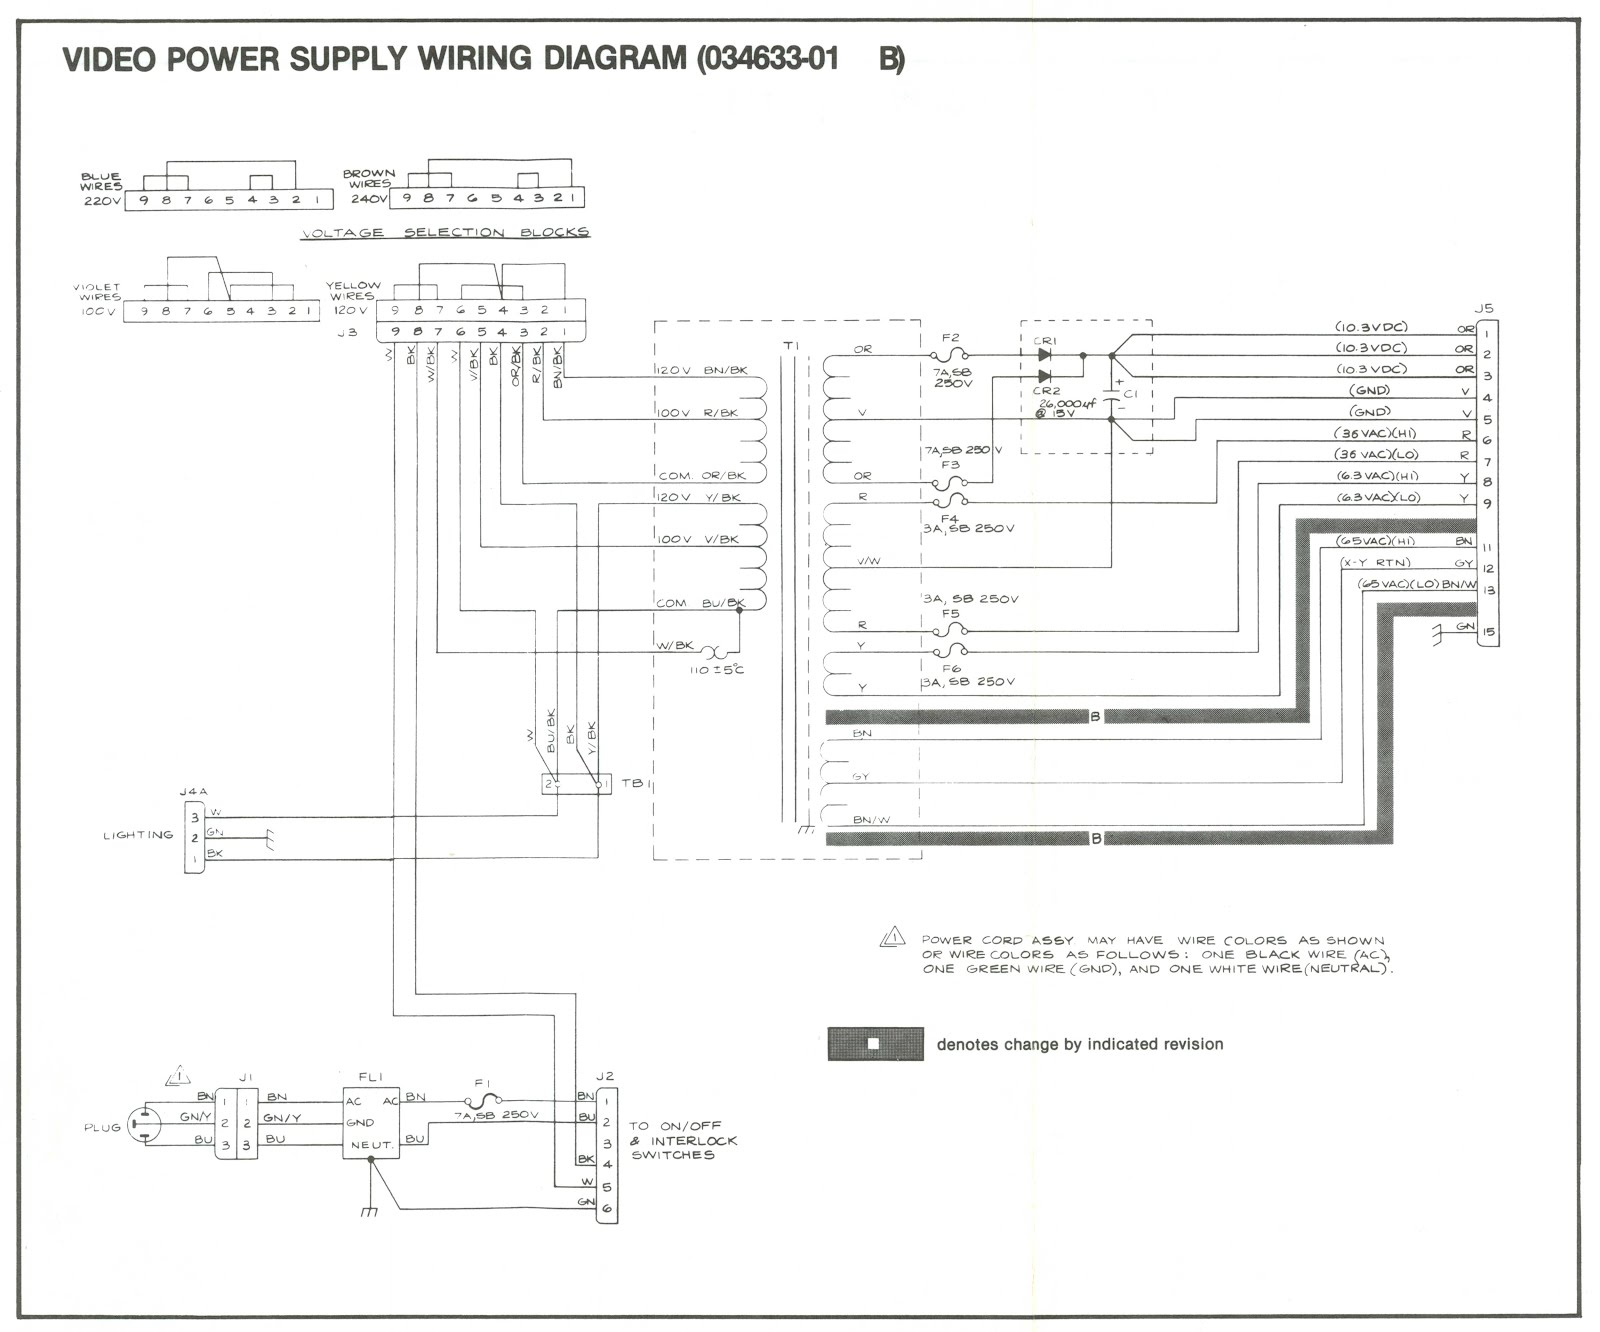 Arcade Game Wiring Diagram Wiring Diagram